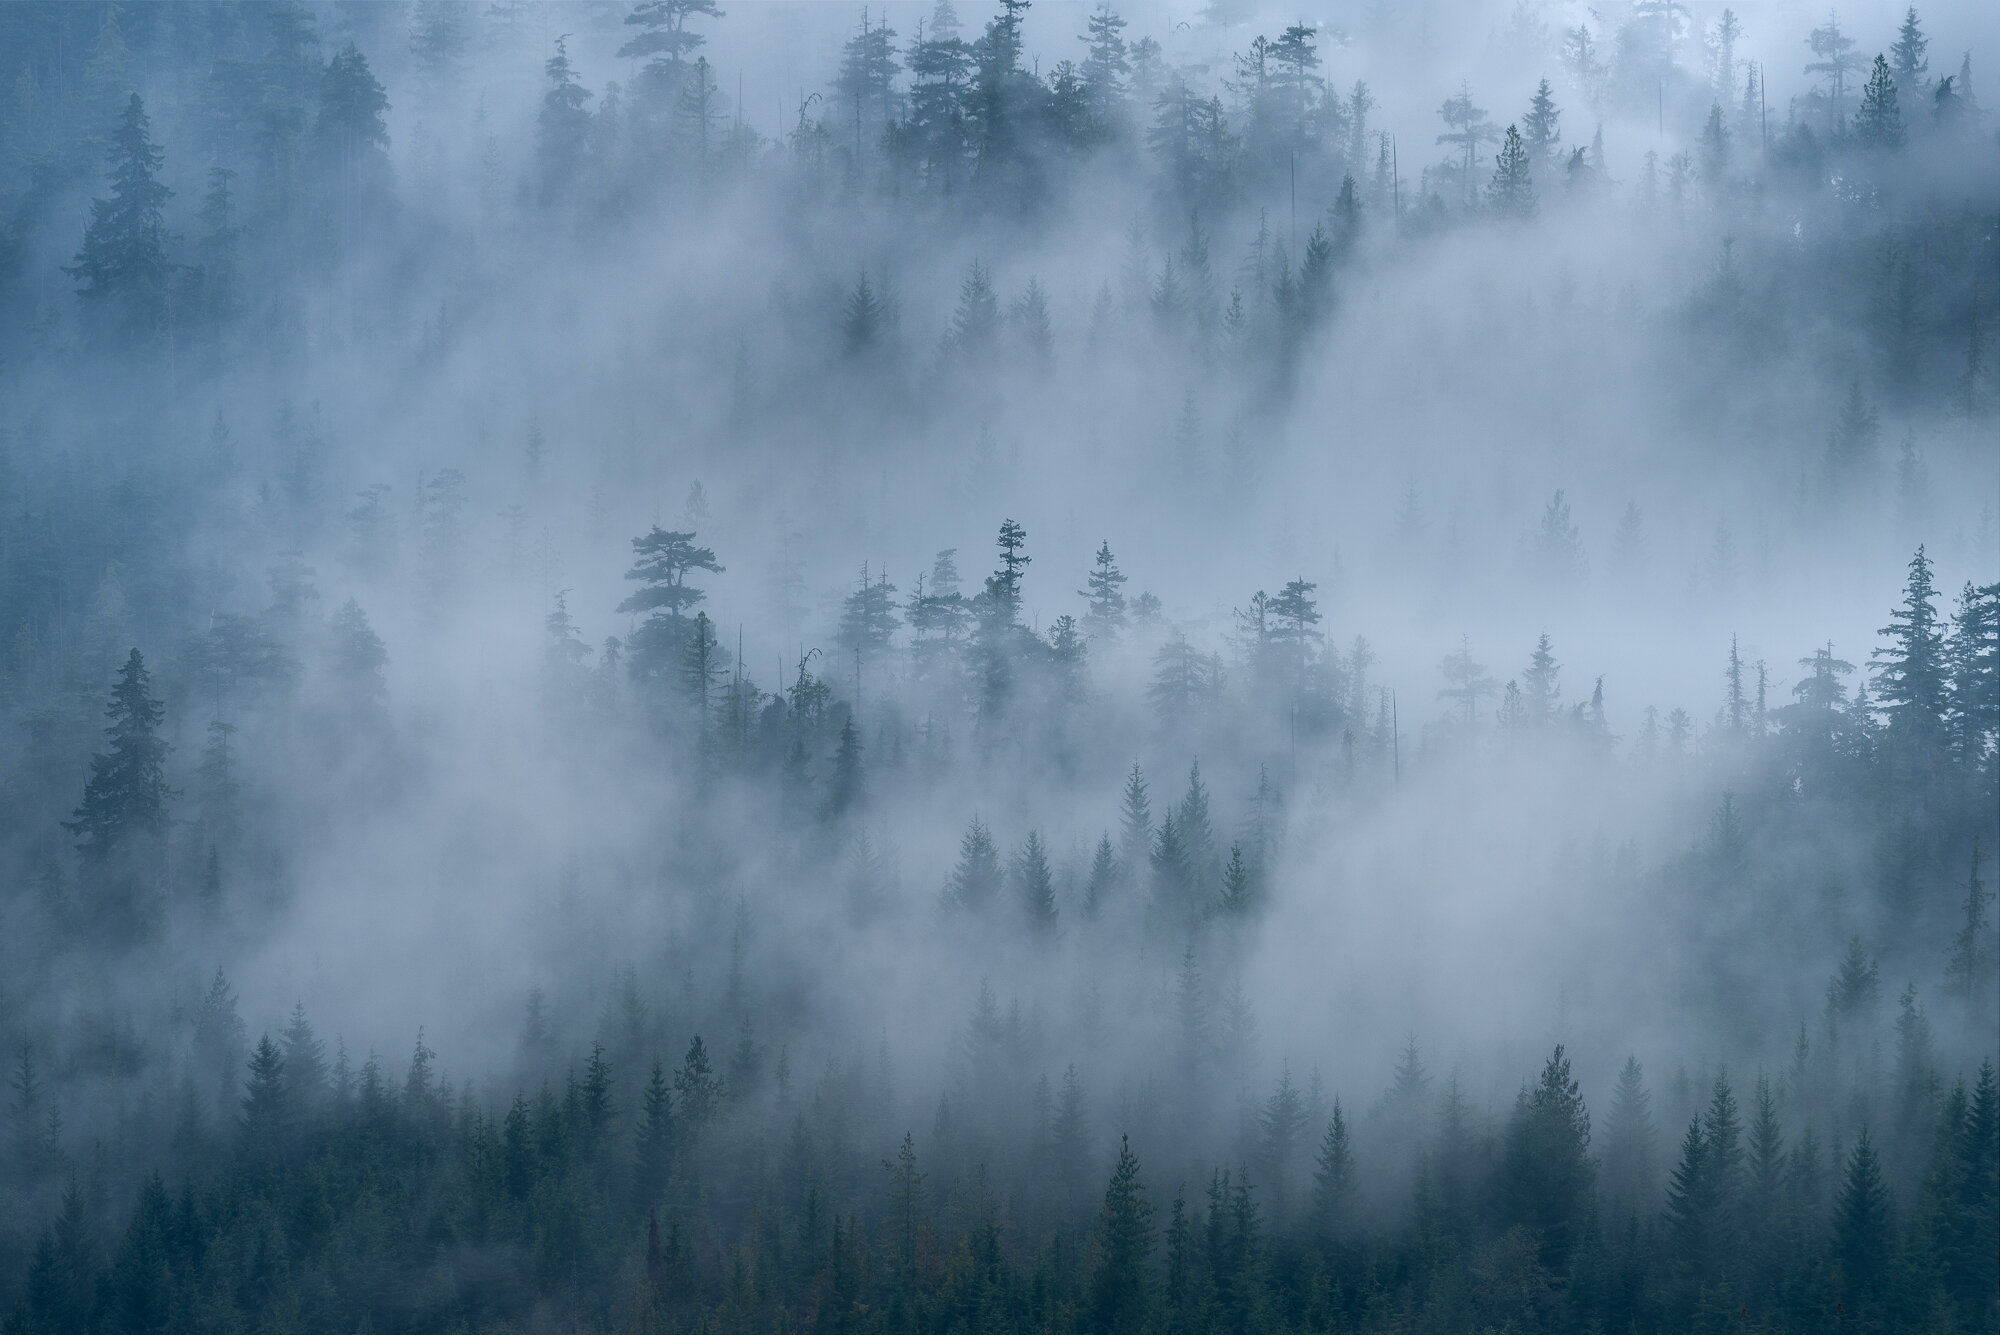 Vancouver Fog Photography: 'Misty Forest'